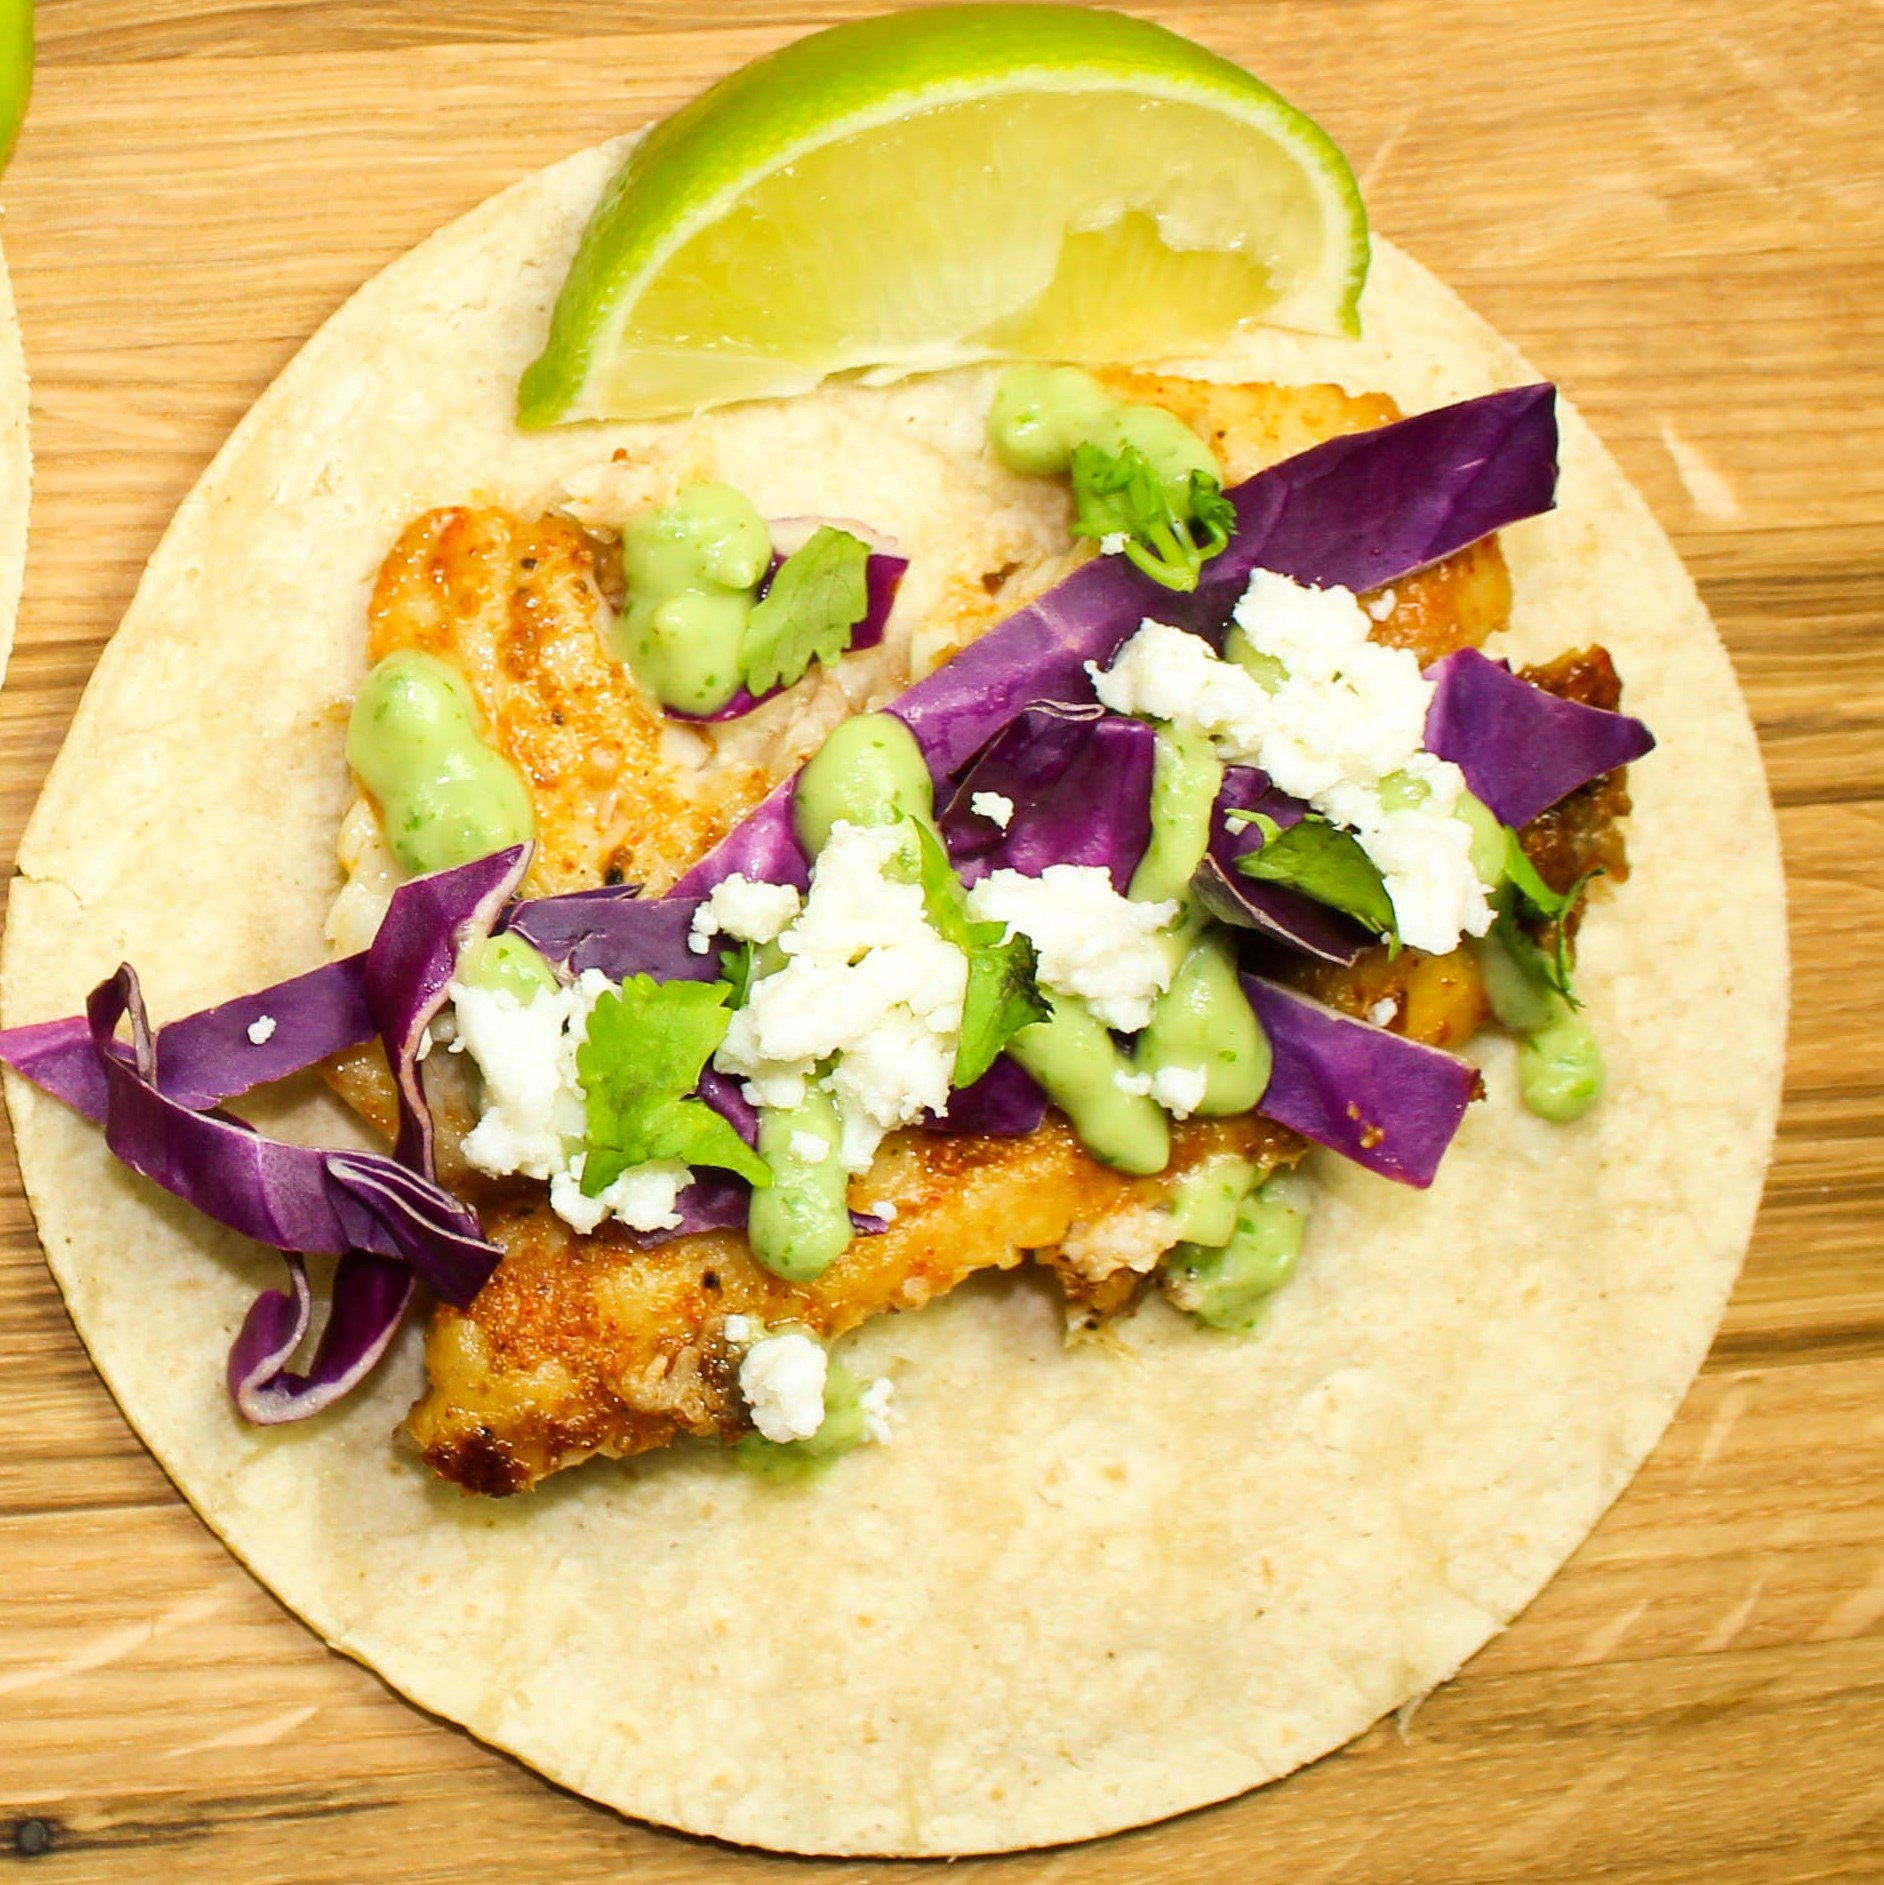 """Skillet Fish Tacos with Avocado Crema are perfect for """"taco Tuesday"""" or really any day of the week. Weight Watchers friendly recipe. www.bitesofflavor.com"""